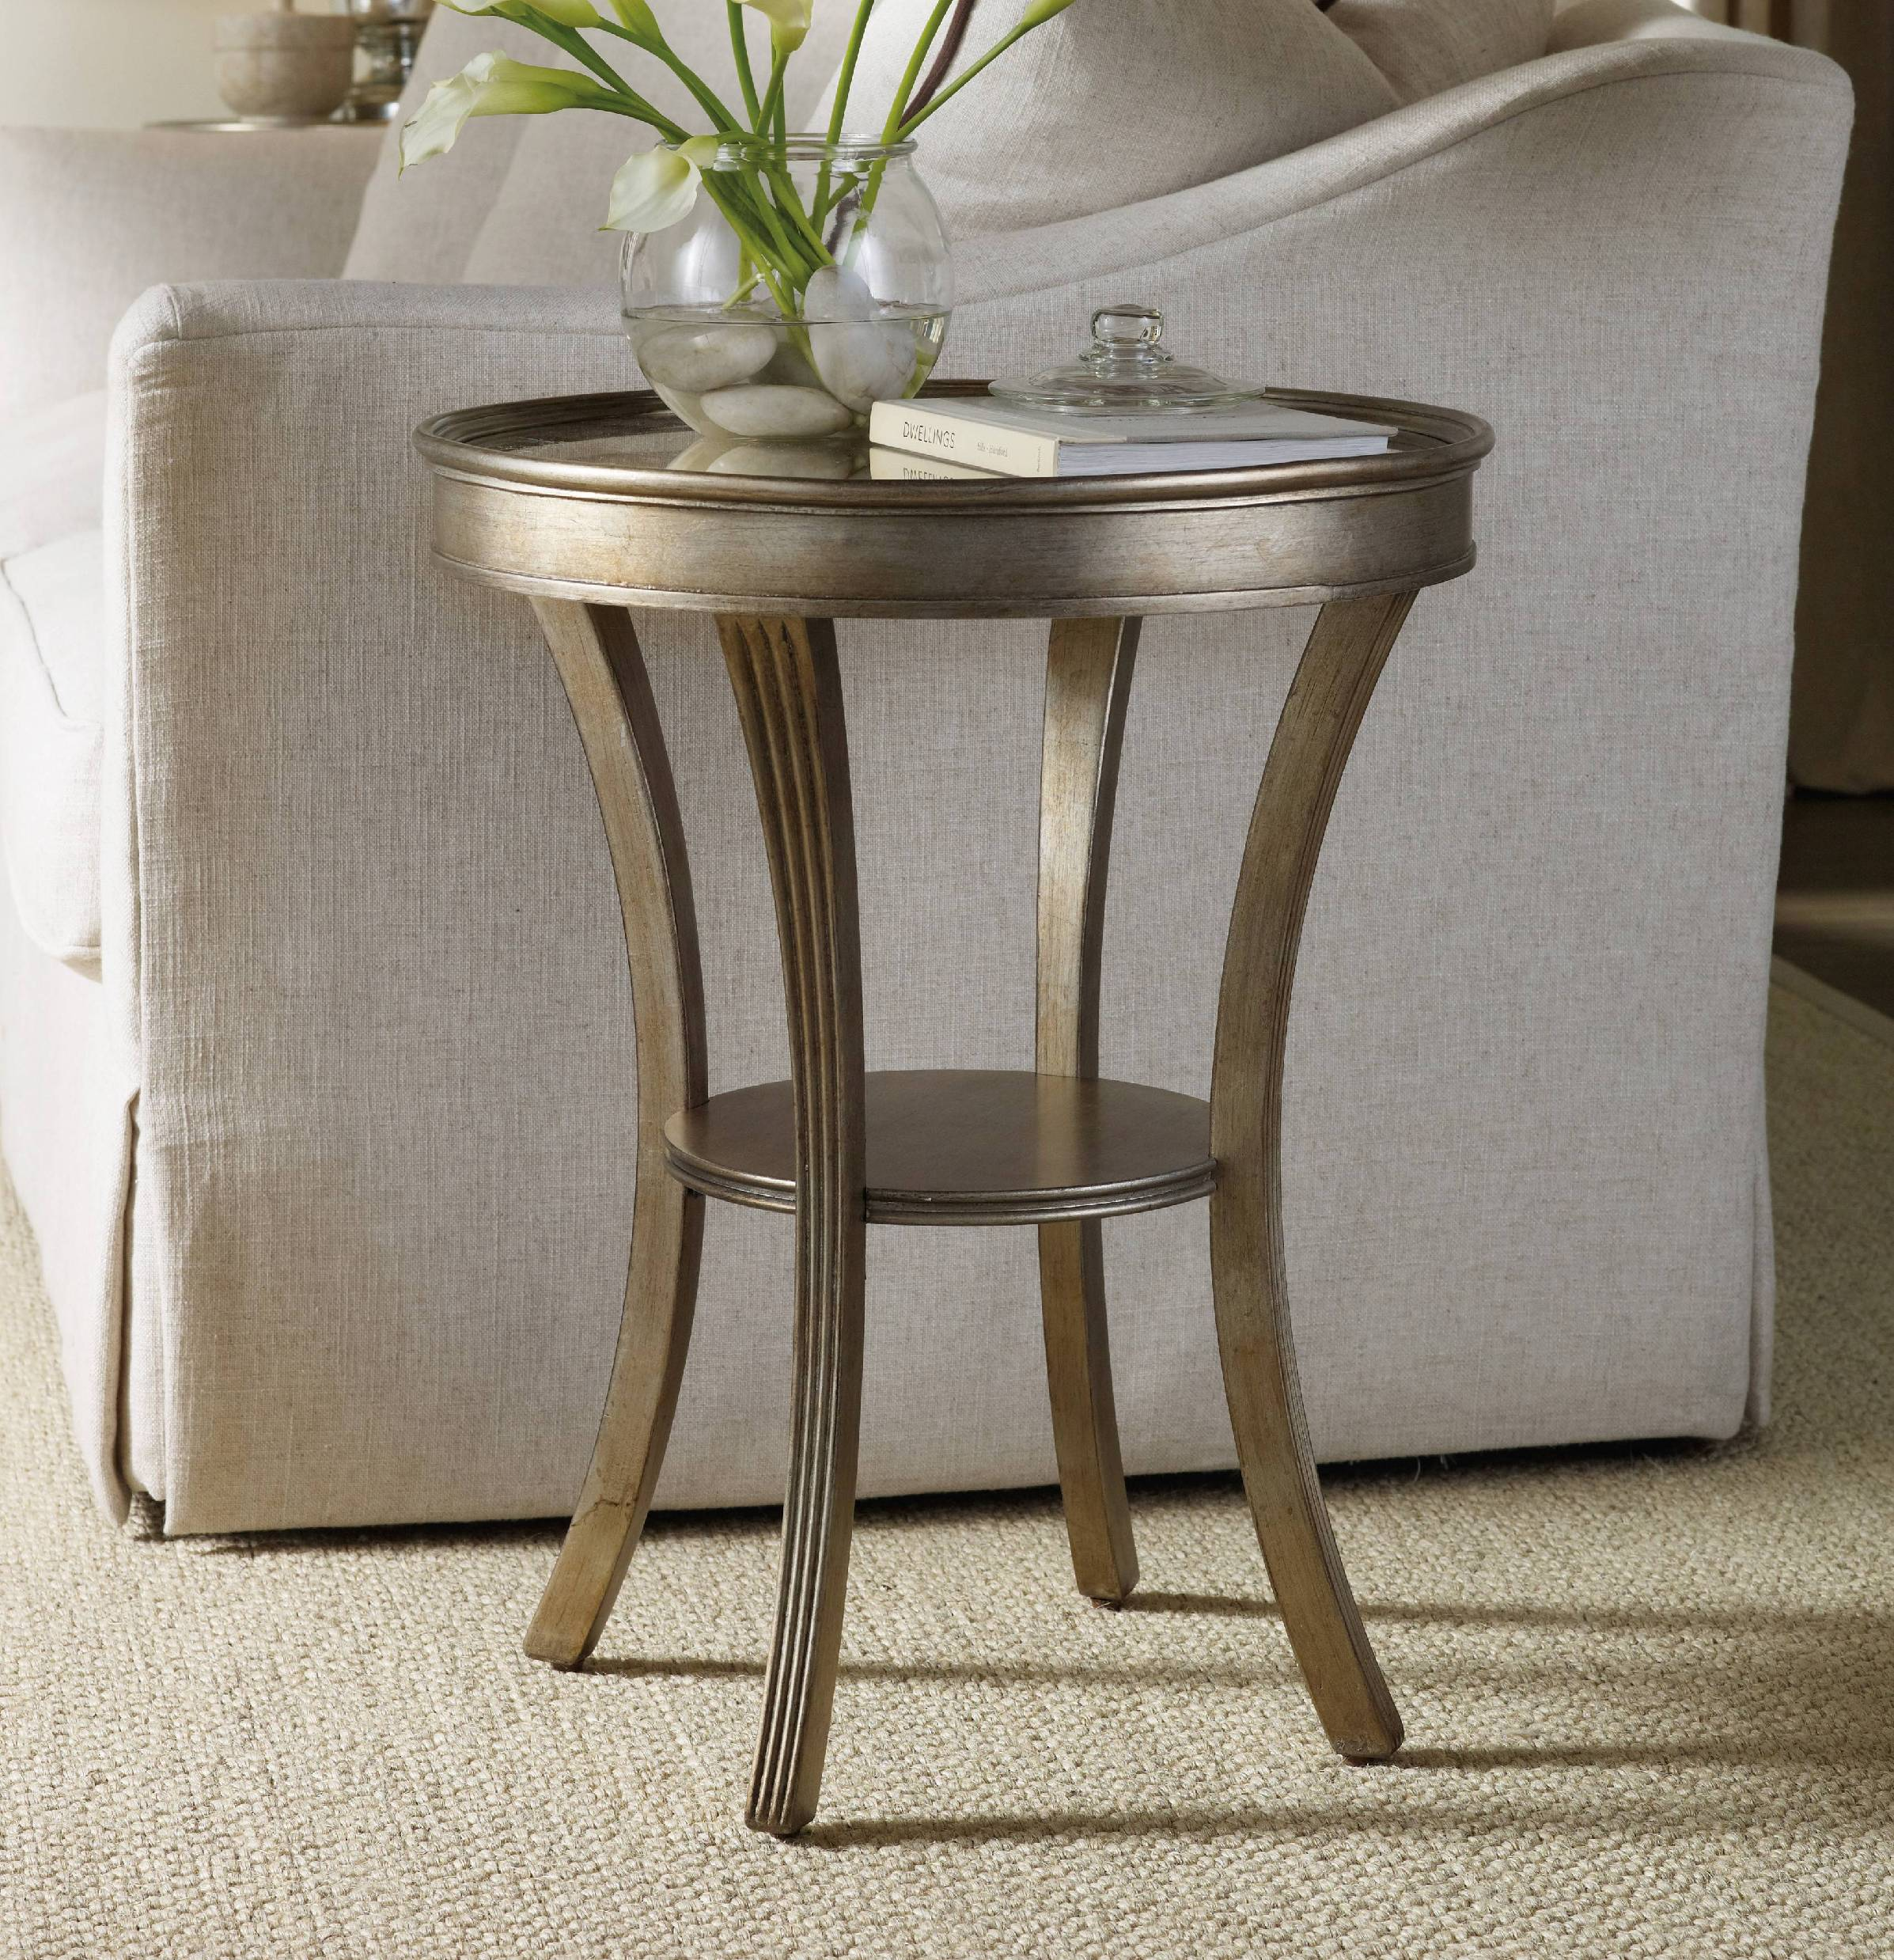 furniture elegant mirrored accent table for home ideas sanctuary round with shelf small desk espresso pedestal coffee inch wooden bedside cream side tall end tables ikea sunflower